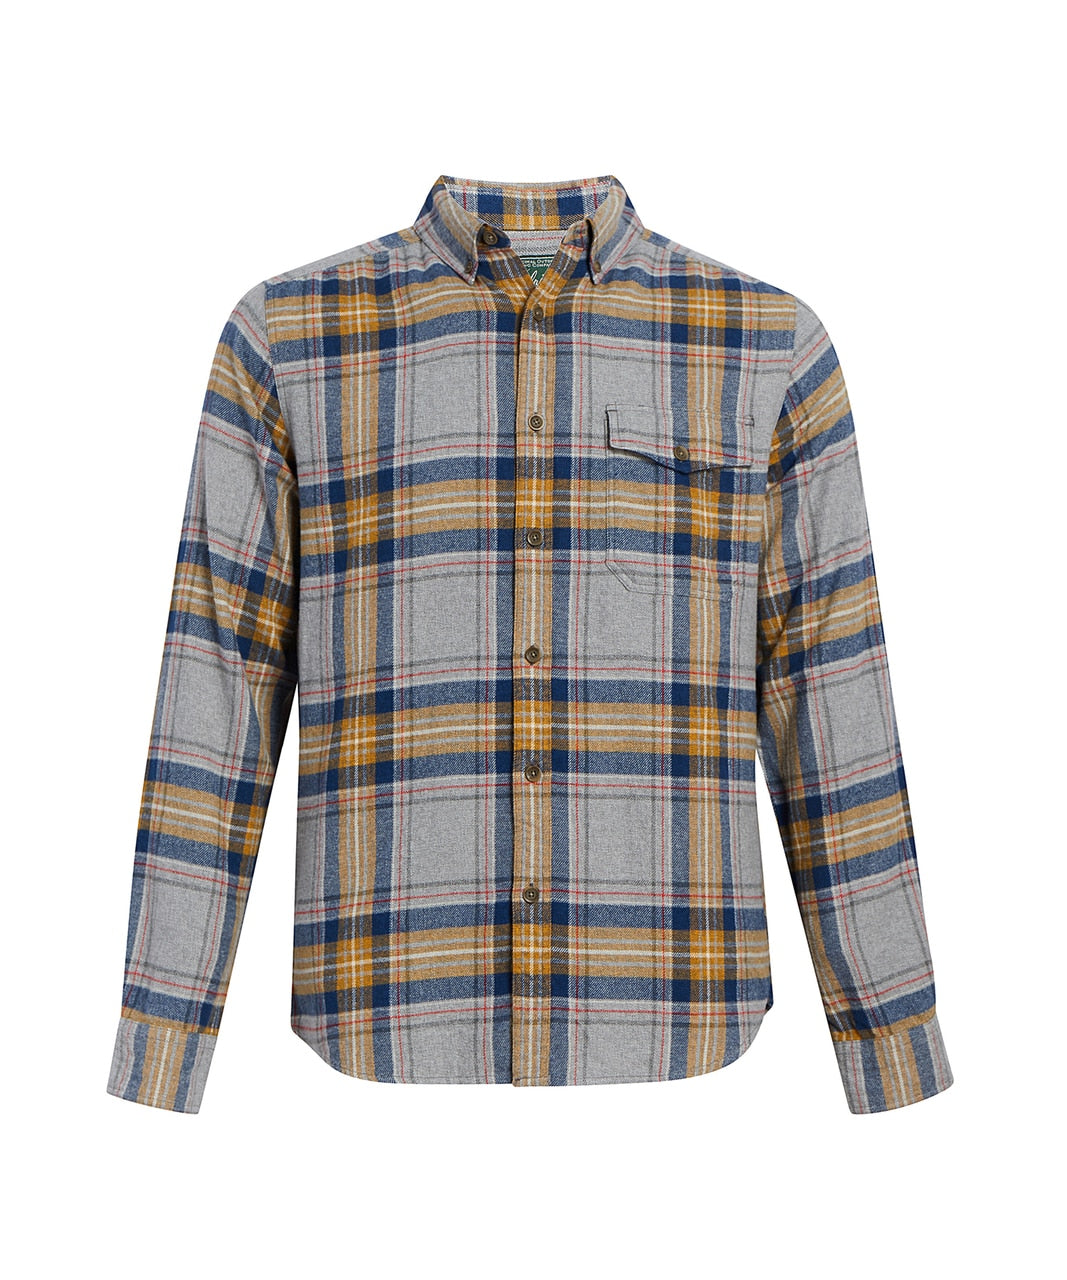 Woolrich Twisted Rich Cinder Shirt